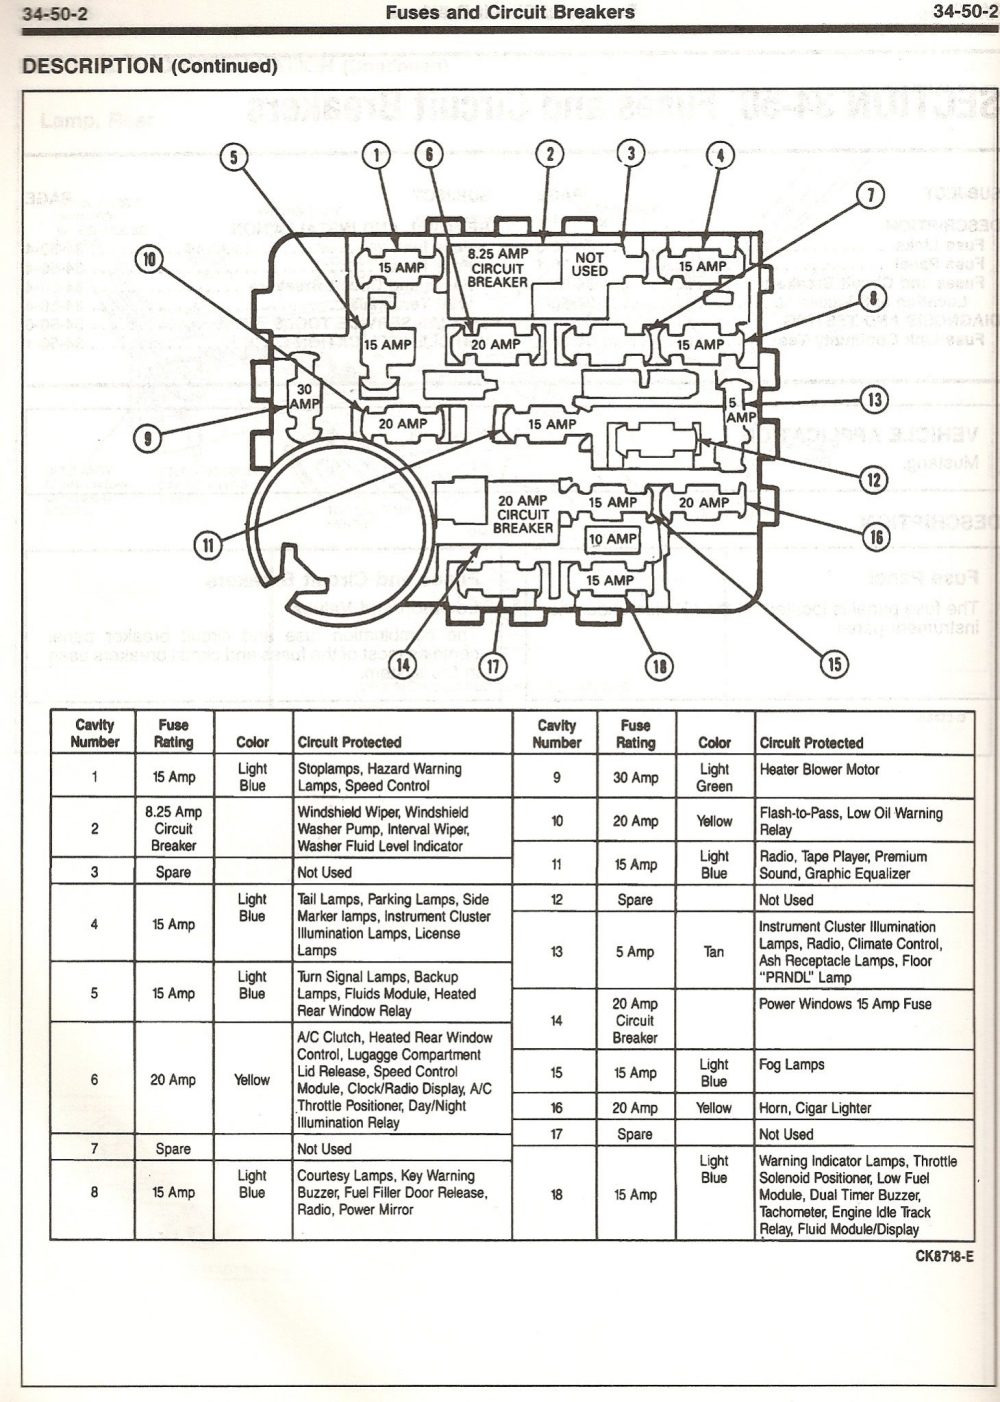 medium resolution of 1990 ford fuse box diagram wiring diagram paper 1988 ford tempo fuse diagram